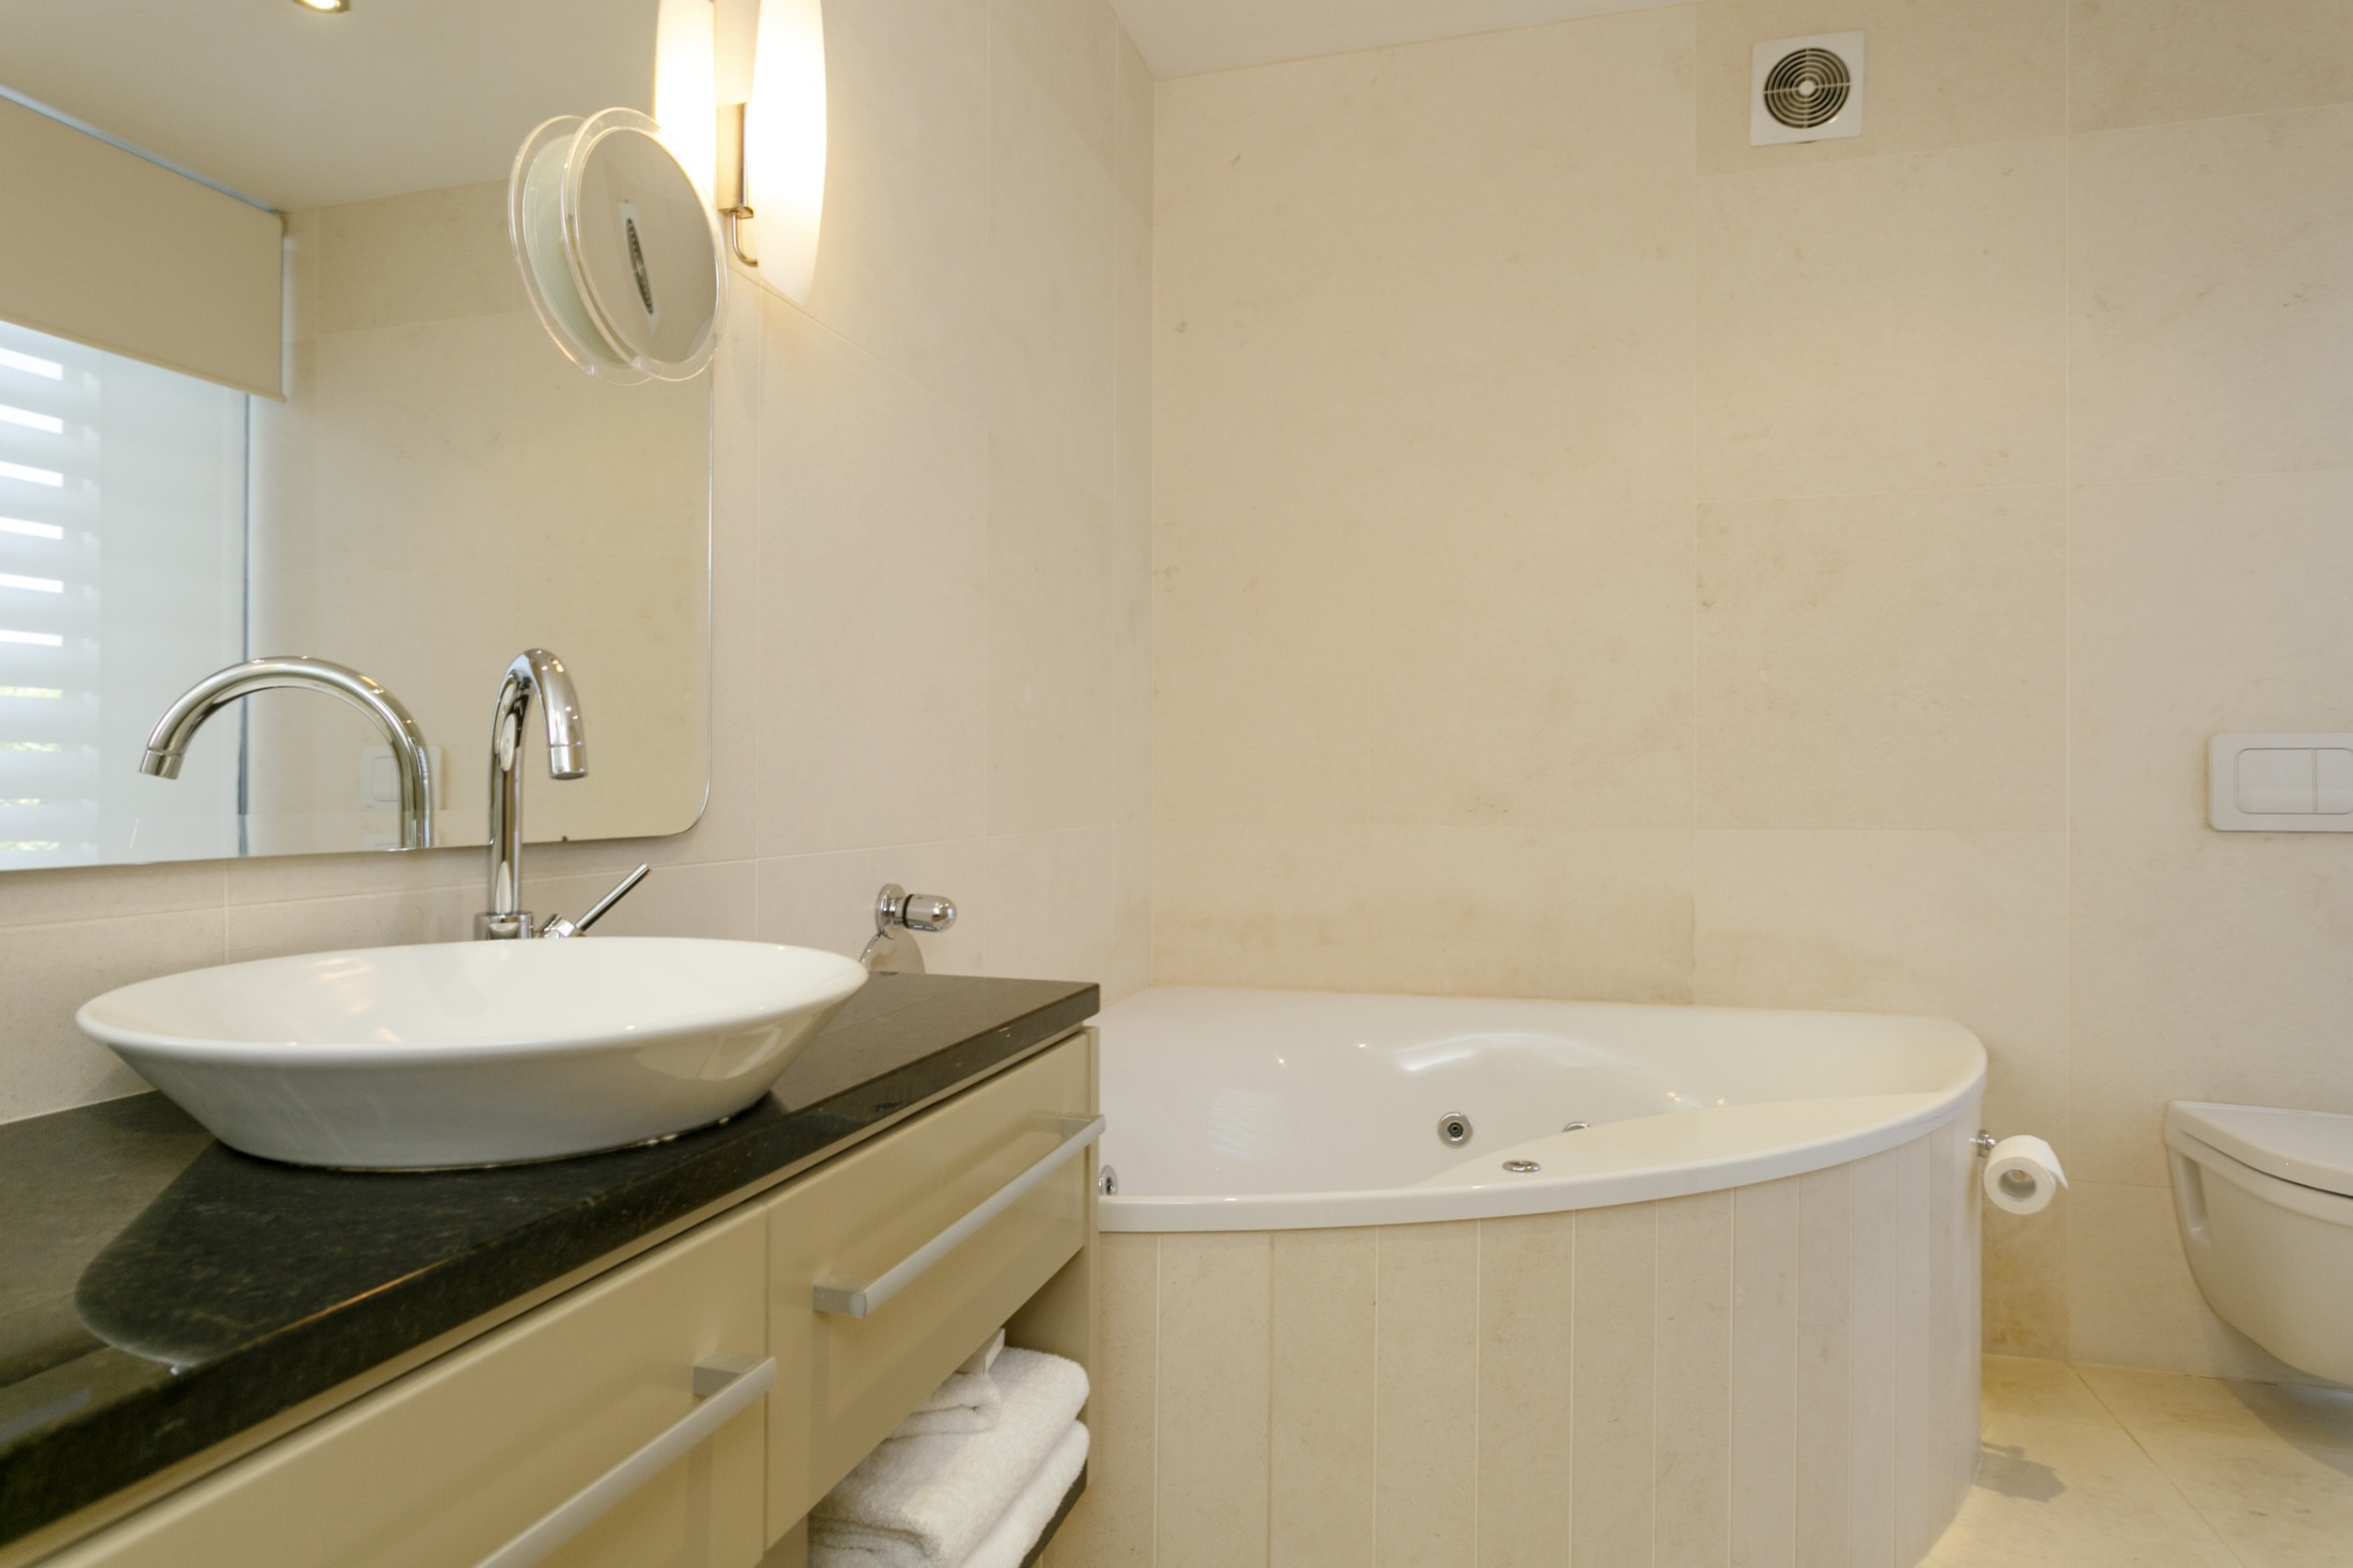 Ground floor two bedroom apartment master bedroom ensuite bathroom with spa bath 2.jpg